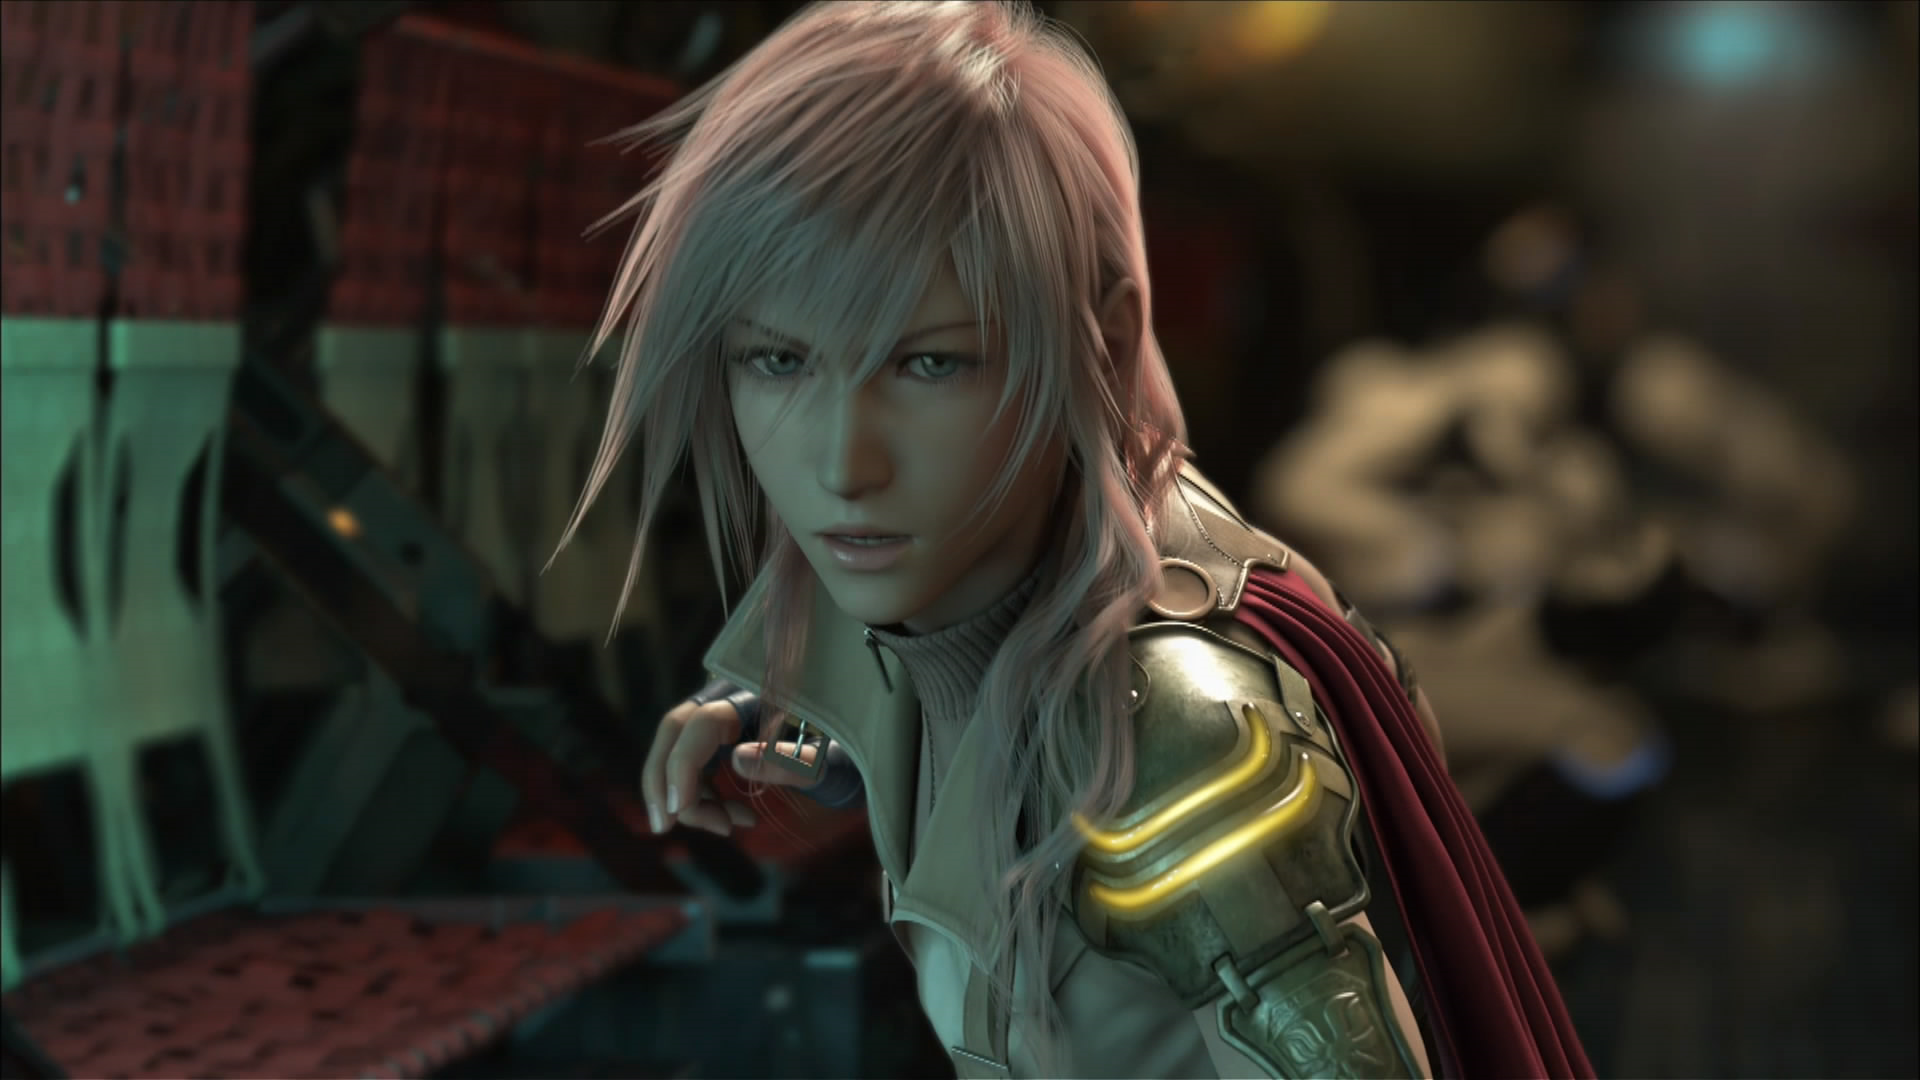 Visual works in lightning returns new xiv 20 cg lightning visual works in lightning returns new xiv 20 cg lightning returns final fantasy xiii message board for playstation 3 page 10 gamefaqs voltagebd Image collections